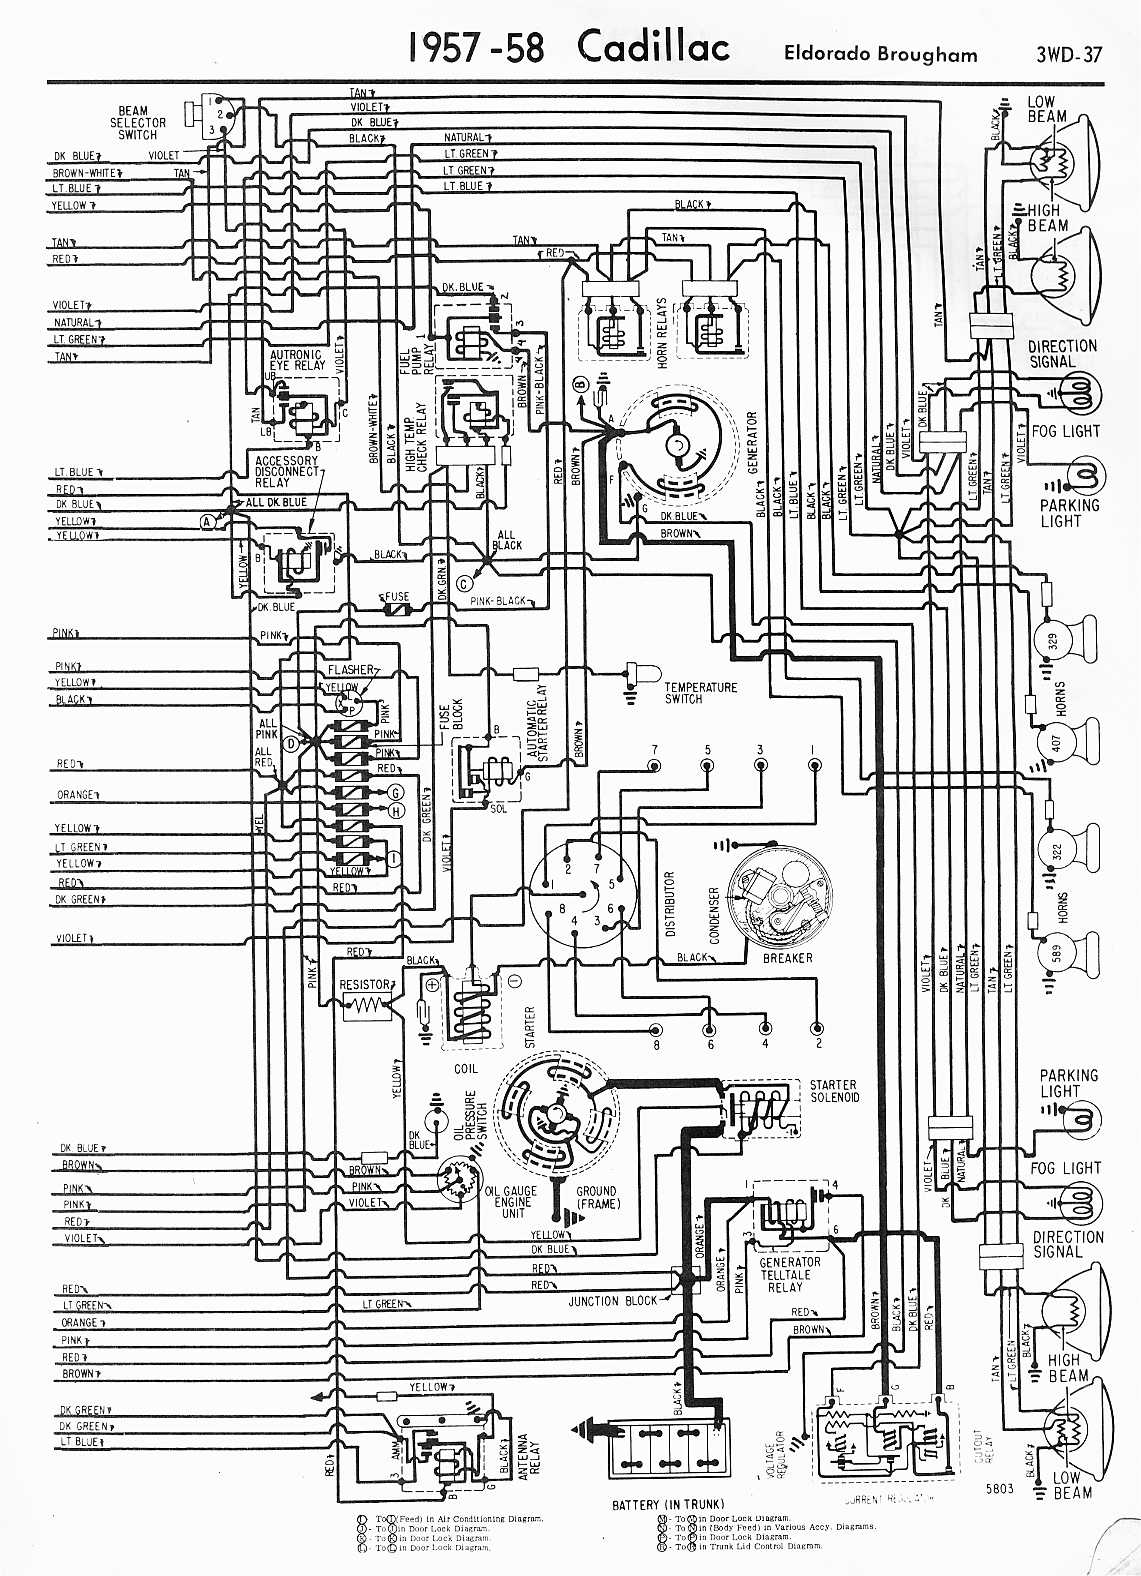 cadillac eldorado wiring diagram detailed schematics diagram rh  keyplusrubber com 1997 Cadillac DeVille Wiring Diagrams Bluetooth Speaker  Wiring Diagram